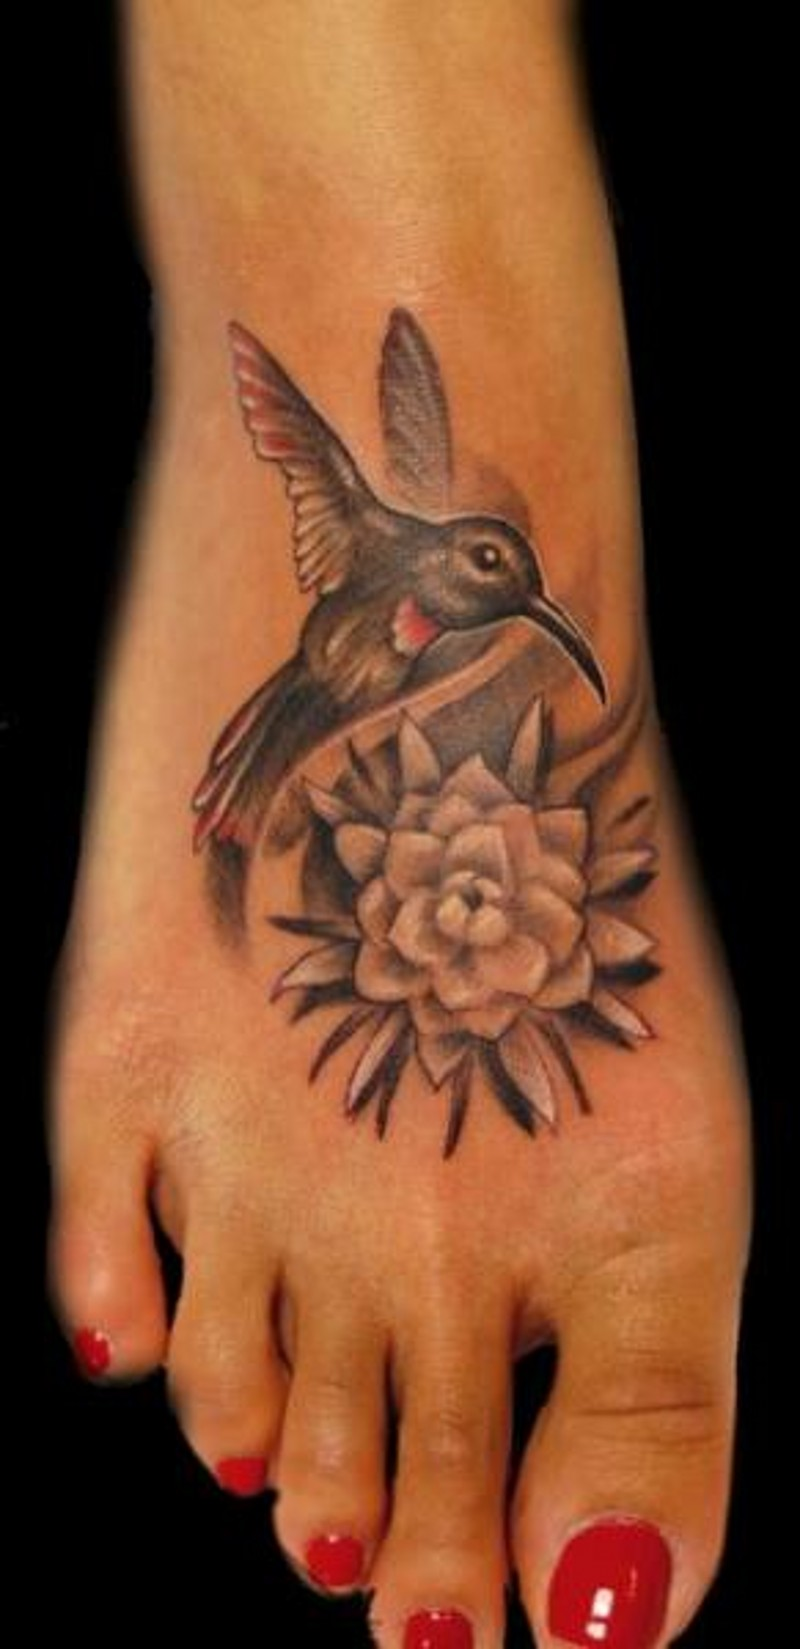 Tiny beautiful colored foot tattoo of hummingbird with flower